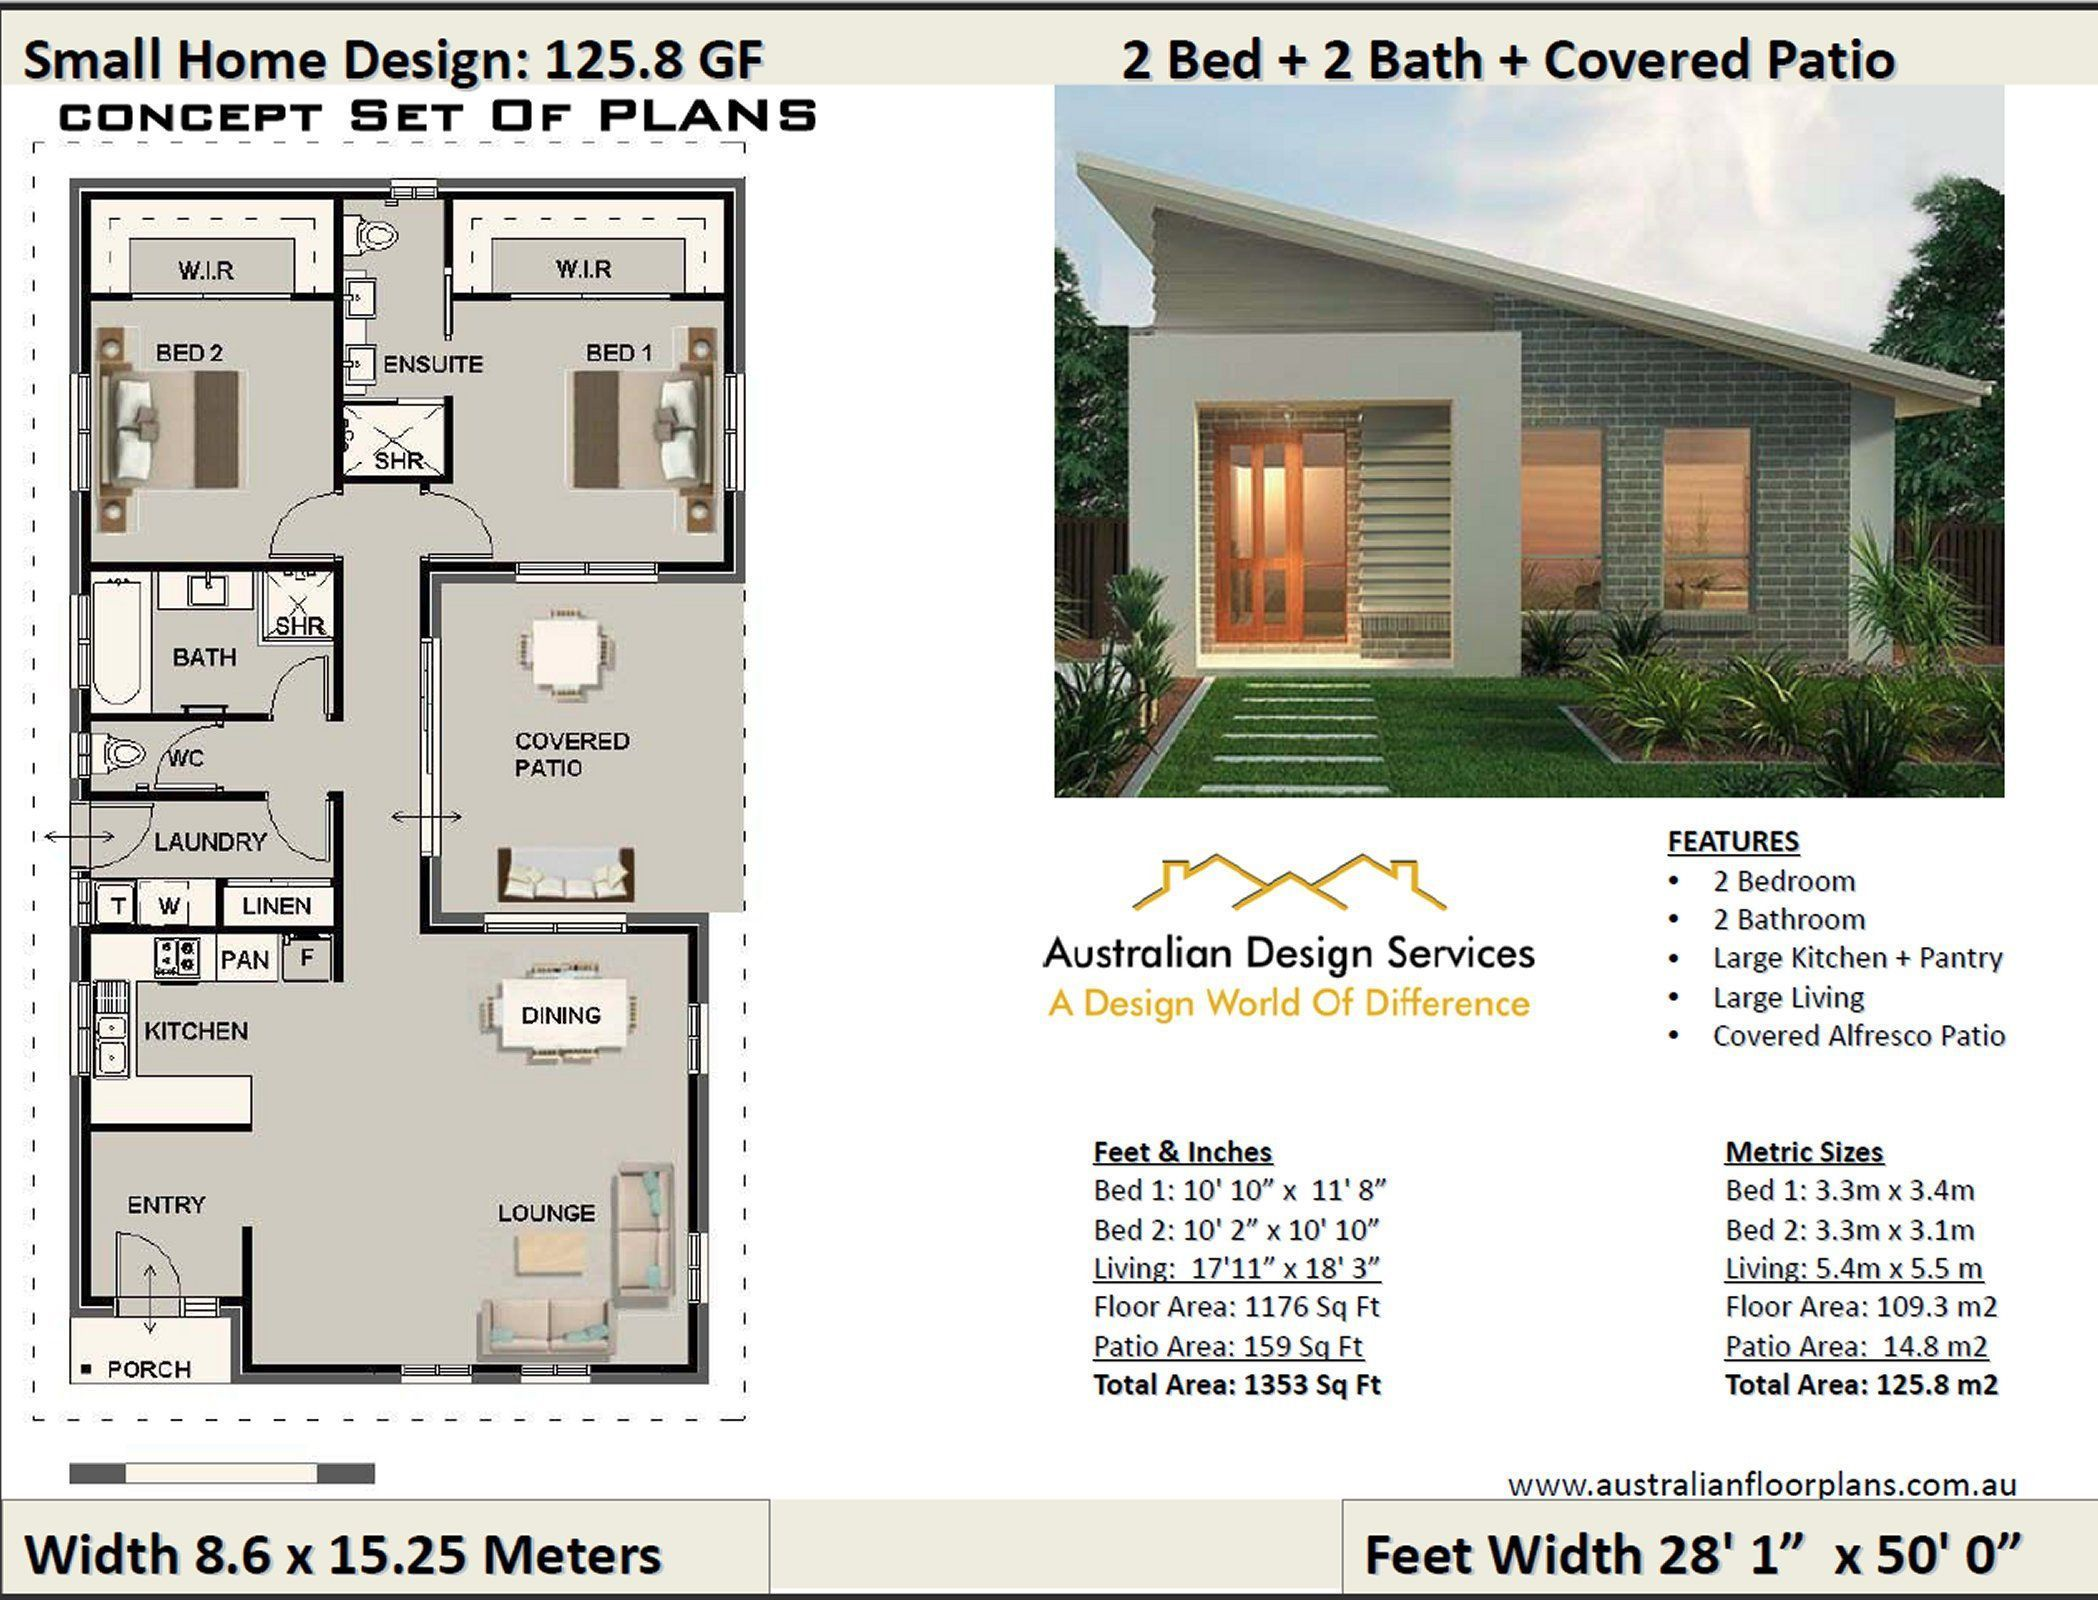 Small House Design Under 1200 Sq Foot House Plan Or 109 3 M2 2 Bedroom 2 Bedroom Design Foot In 2020 Small House Design House Plans Australia House Design